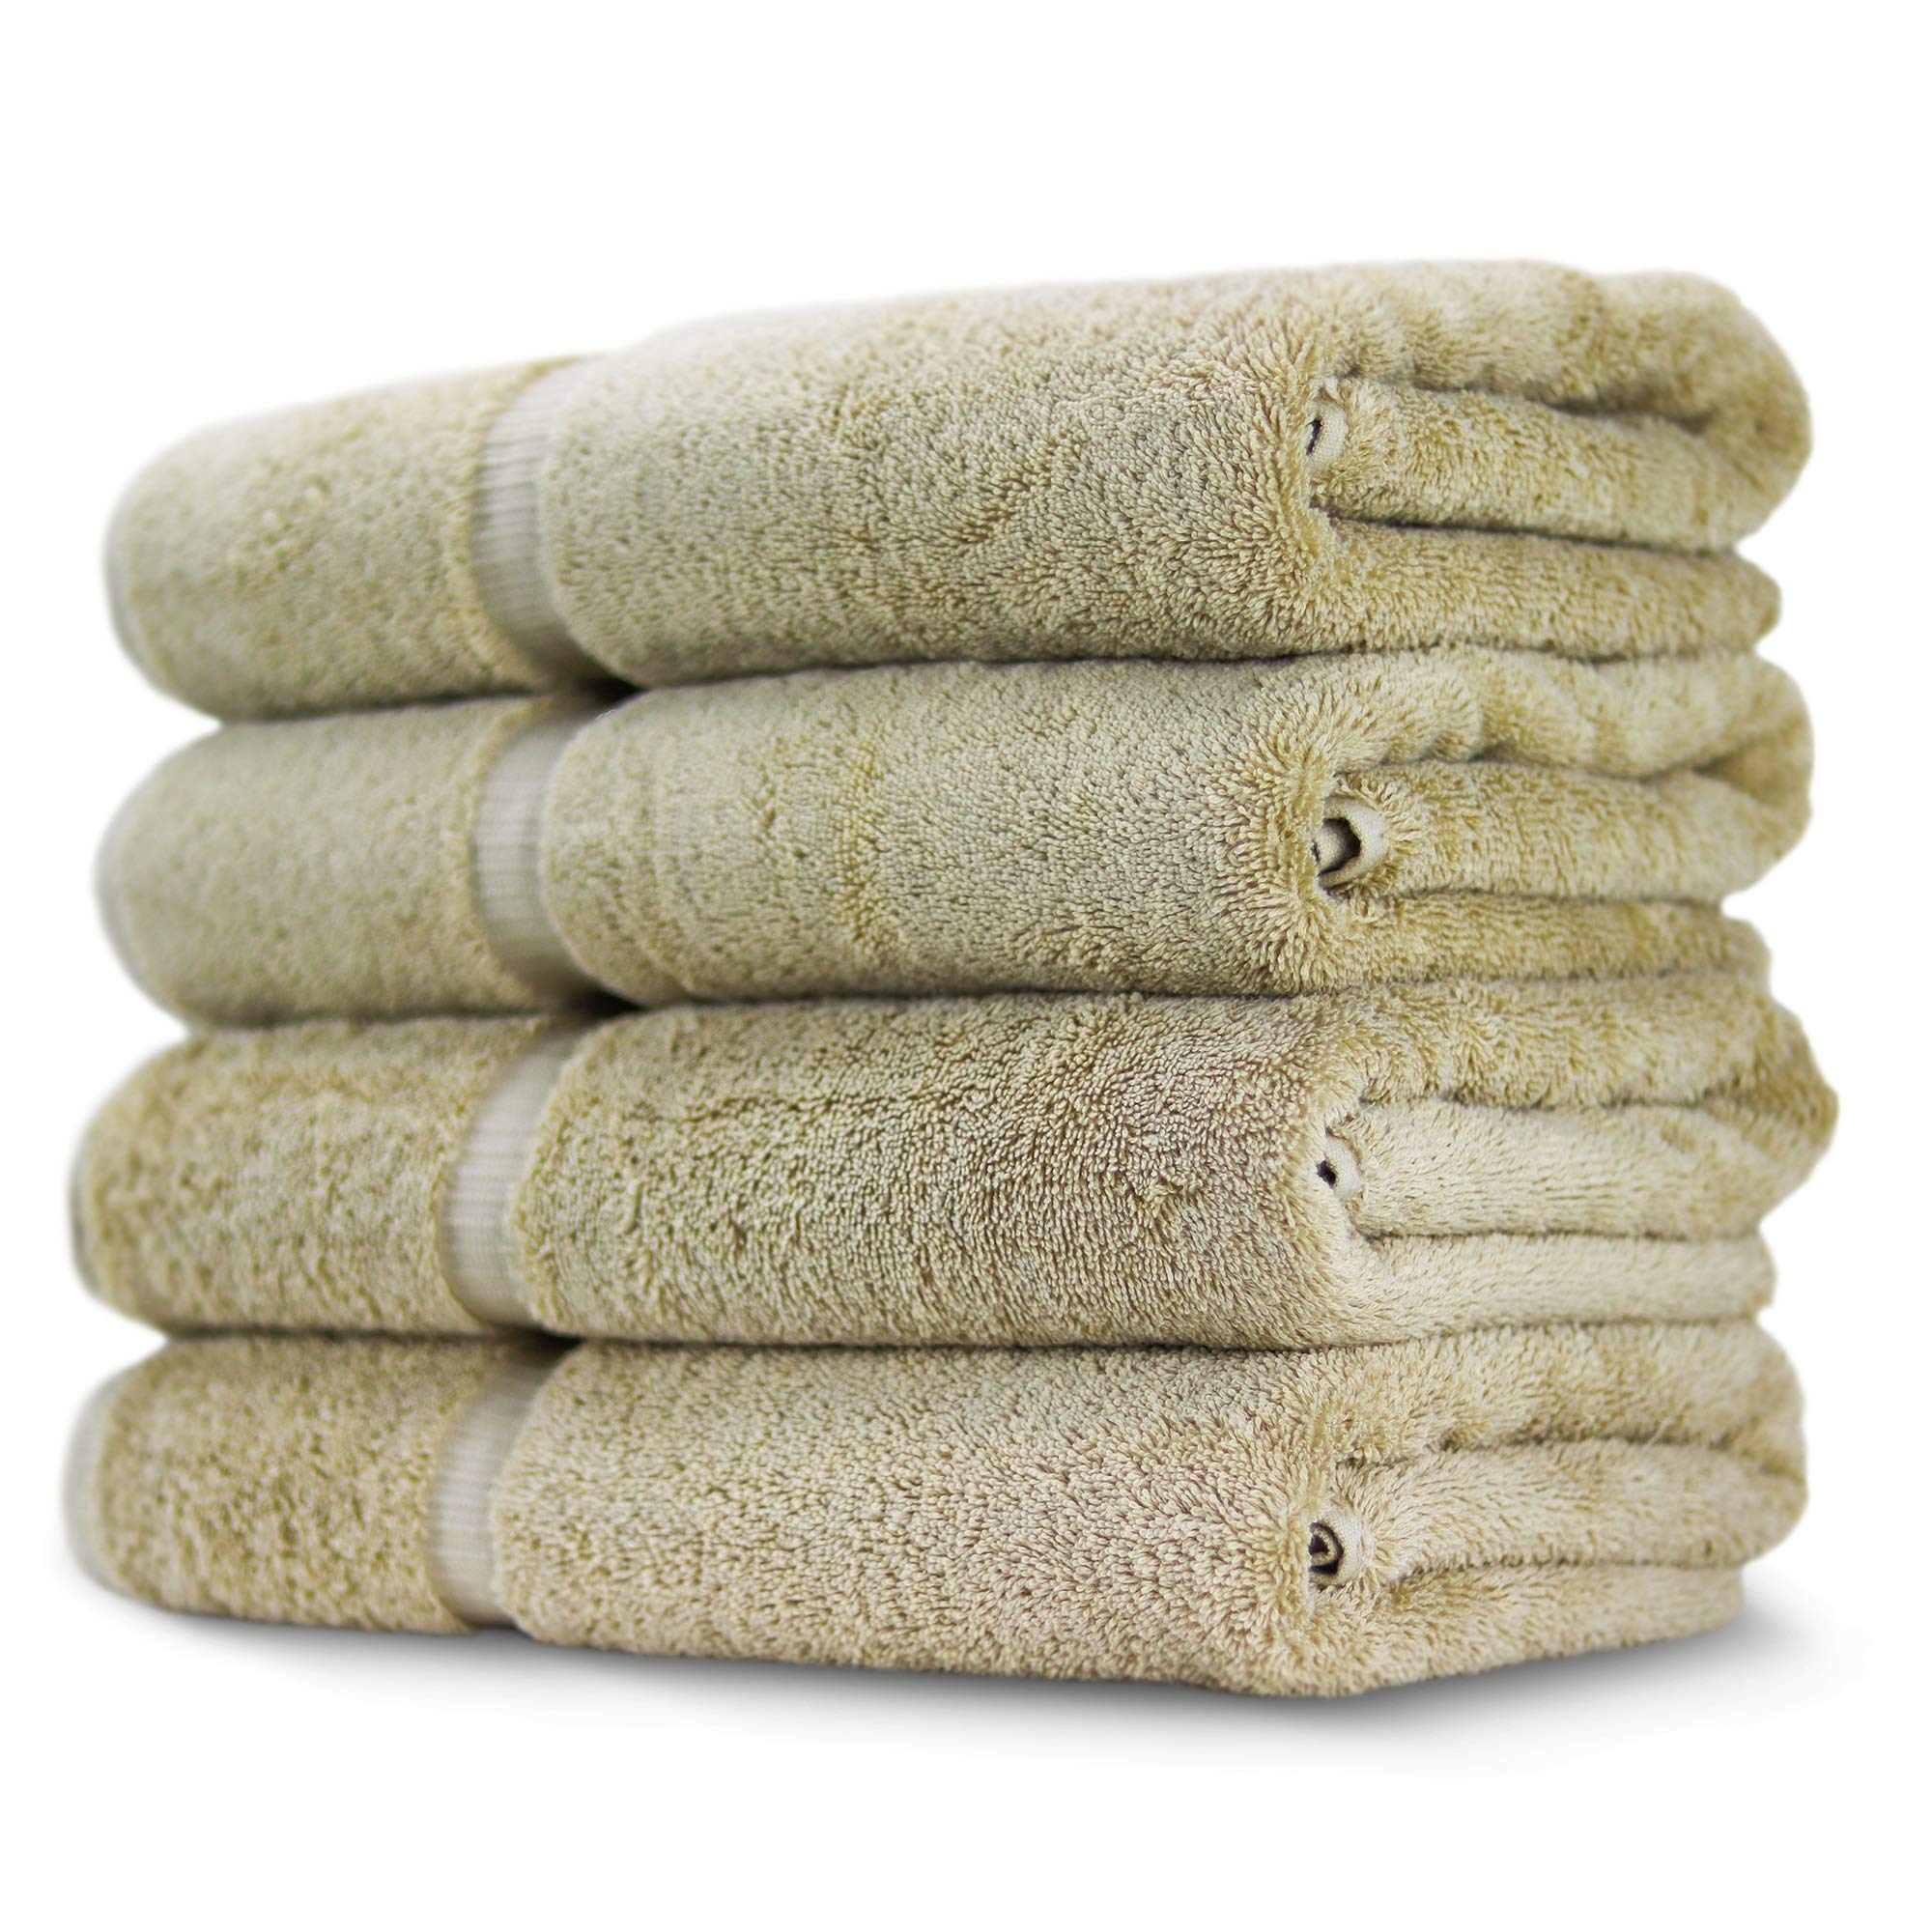 Towel Bazaar Premium Eco-Friendly 100% Turkish Cotton Hand Towel Set of 4, Multipurpose Bathroom Towels for Hand, Face, Gym and Spa (16 x 30 inches, Driftwood) by Towel Bazaar (Image #2)